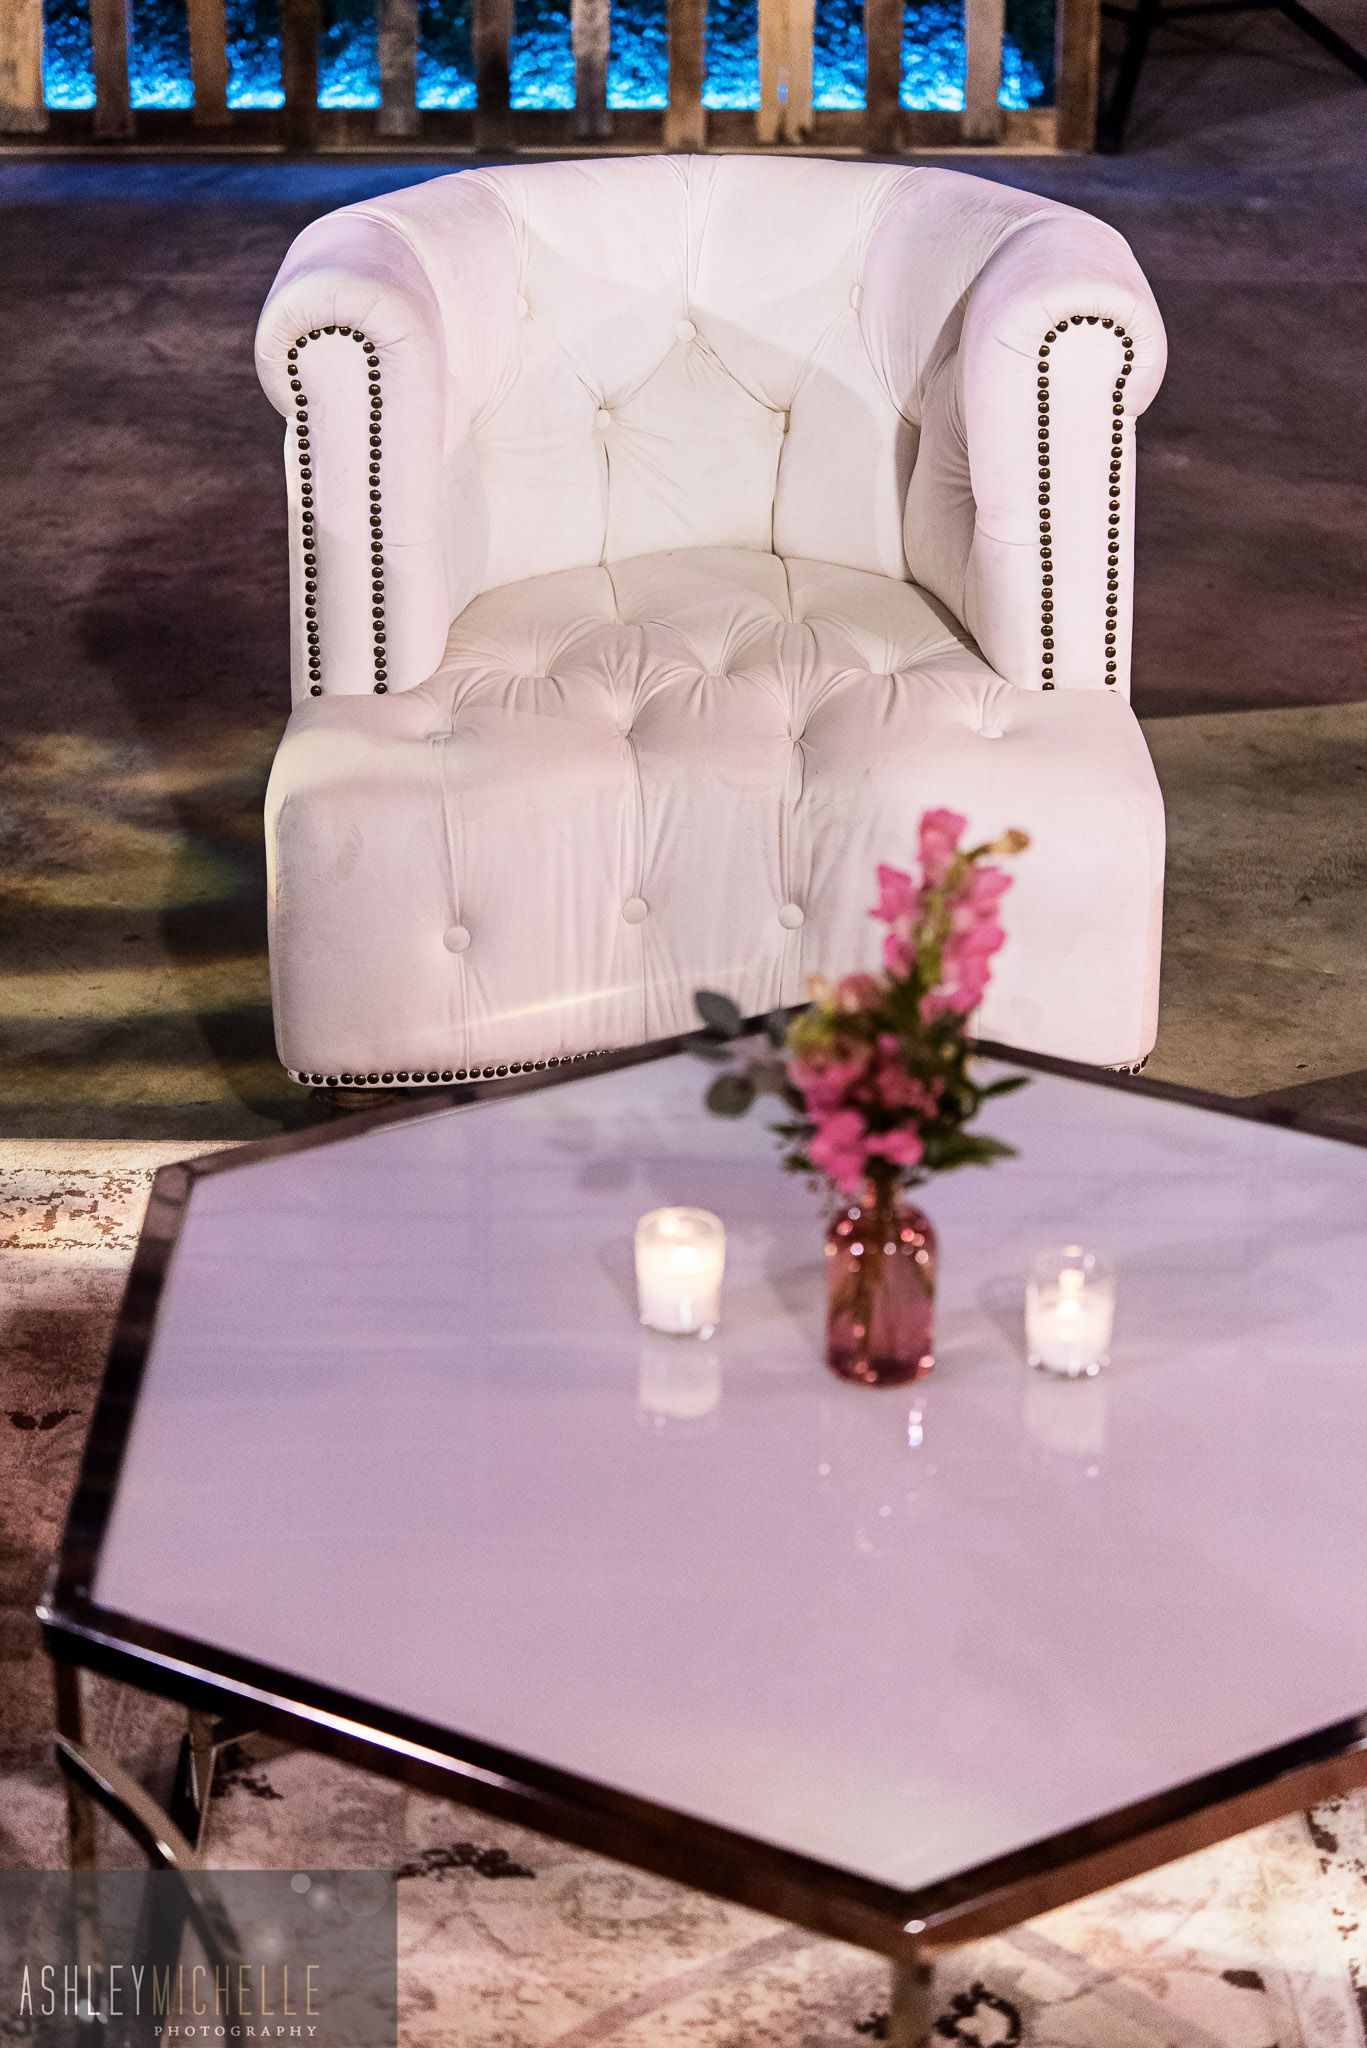 Chair Cover Rental Baltimore Designs For Living Room Bride Relaunch Party Venue The Winslow In Maryland Rentals White Glove Ft Trouvaille Photography Ashley Michelle